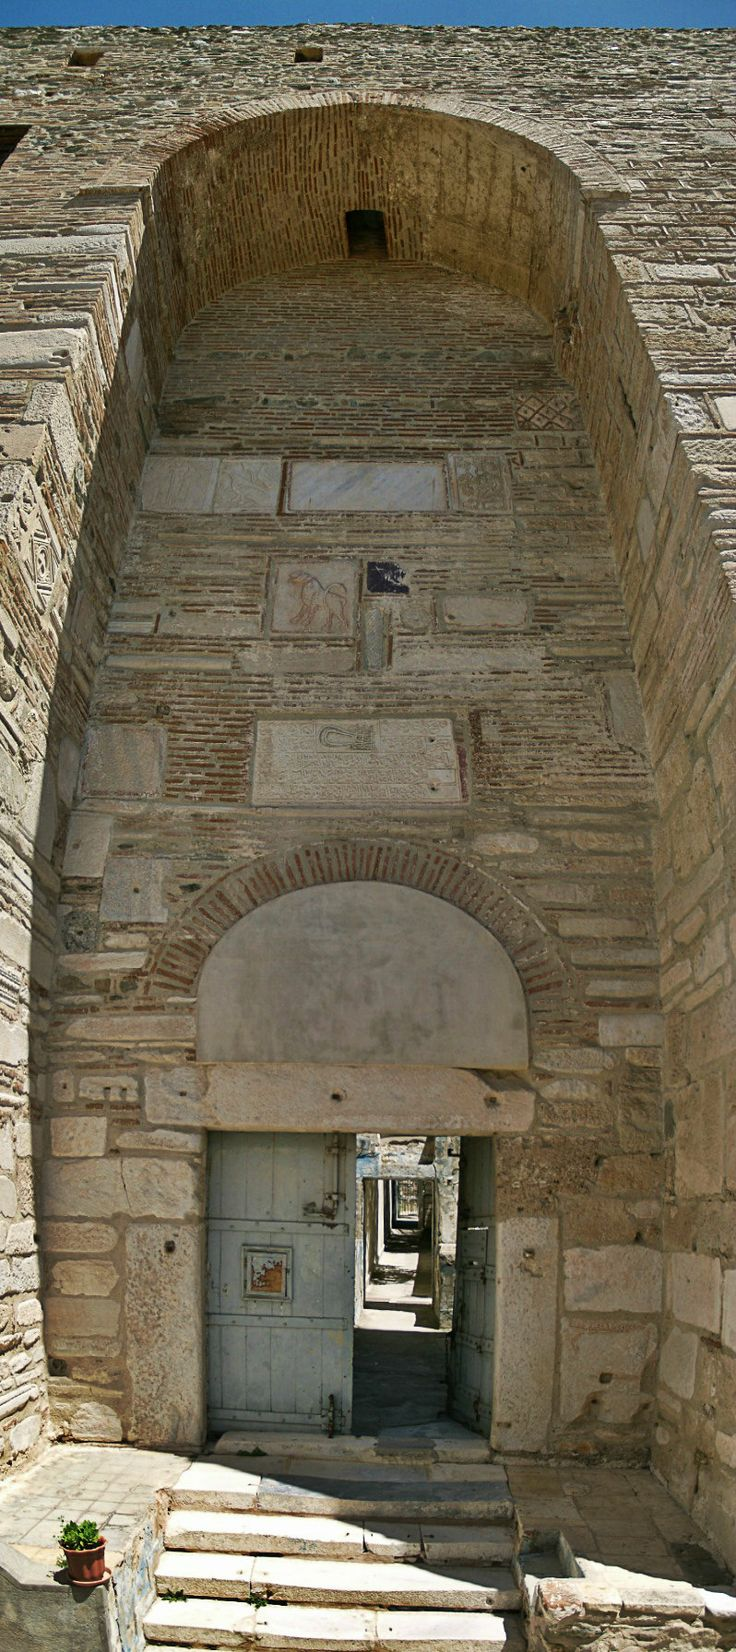 The impressive entrance of Eptapyrgio Fortress or Yenti Koule as it was called by the Ottomans. (Walking Thessaloniki, Route 08 - Seven Towers)